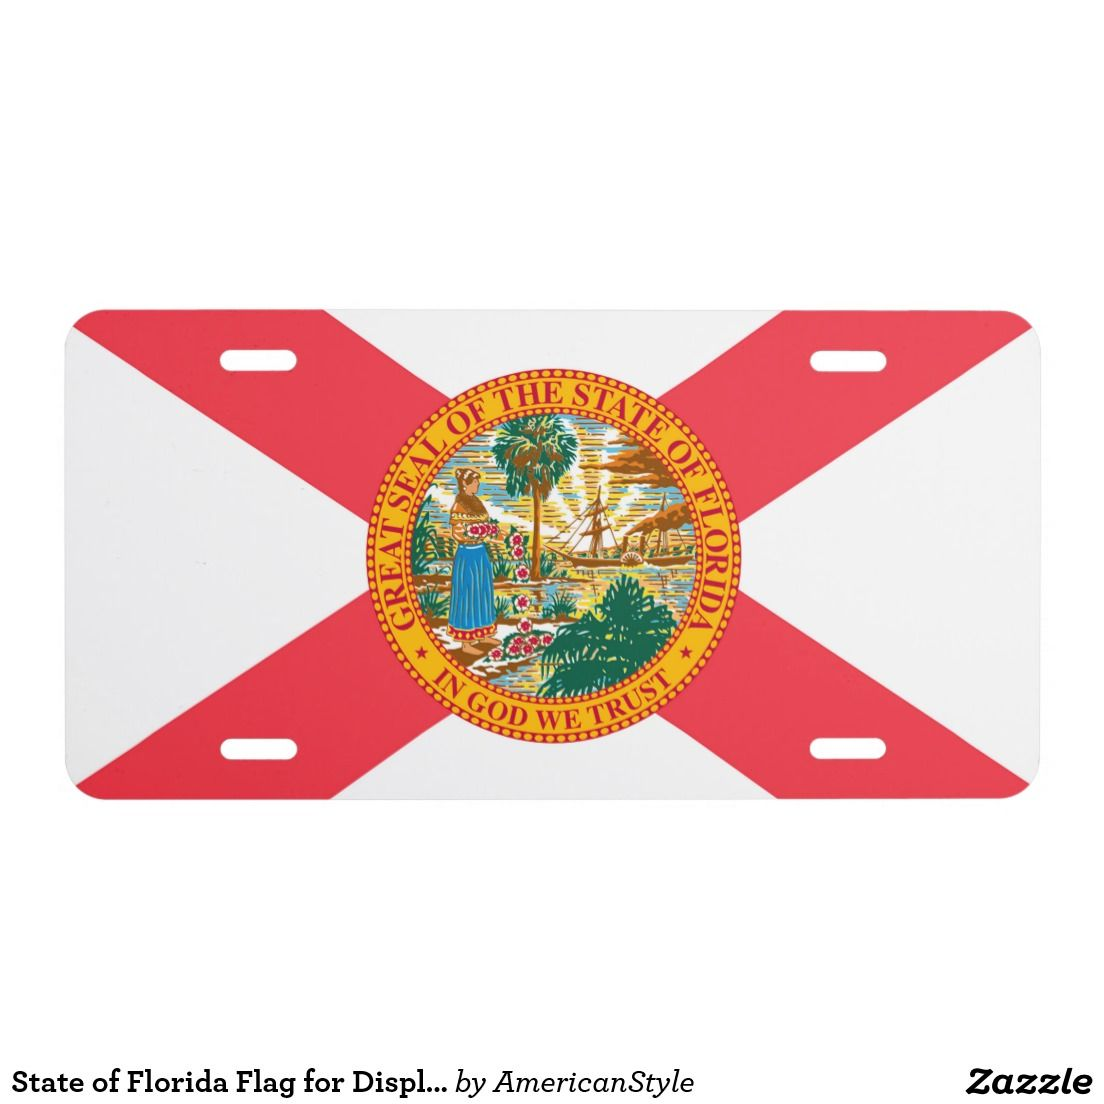 State of Florida Flag  - Car Floor Mats License Plates, Air Fresheners, and other Automobile Accessories